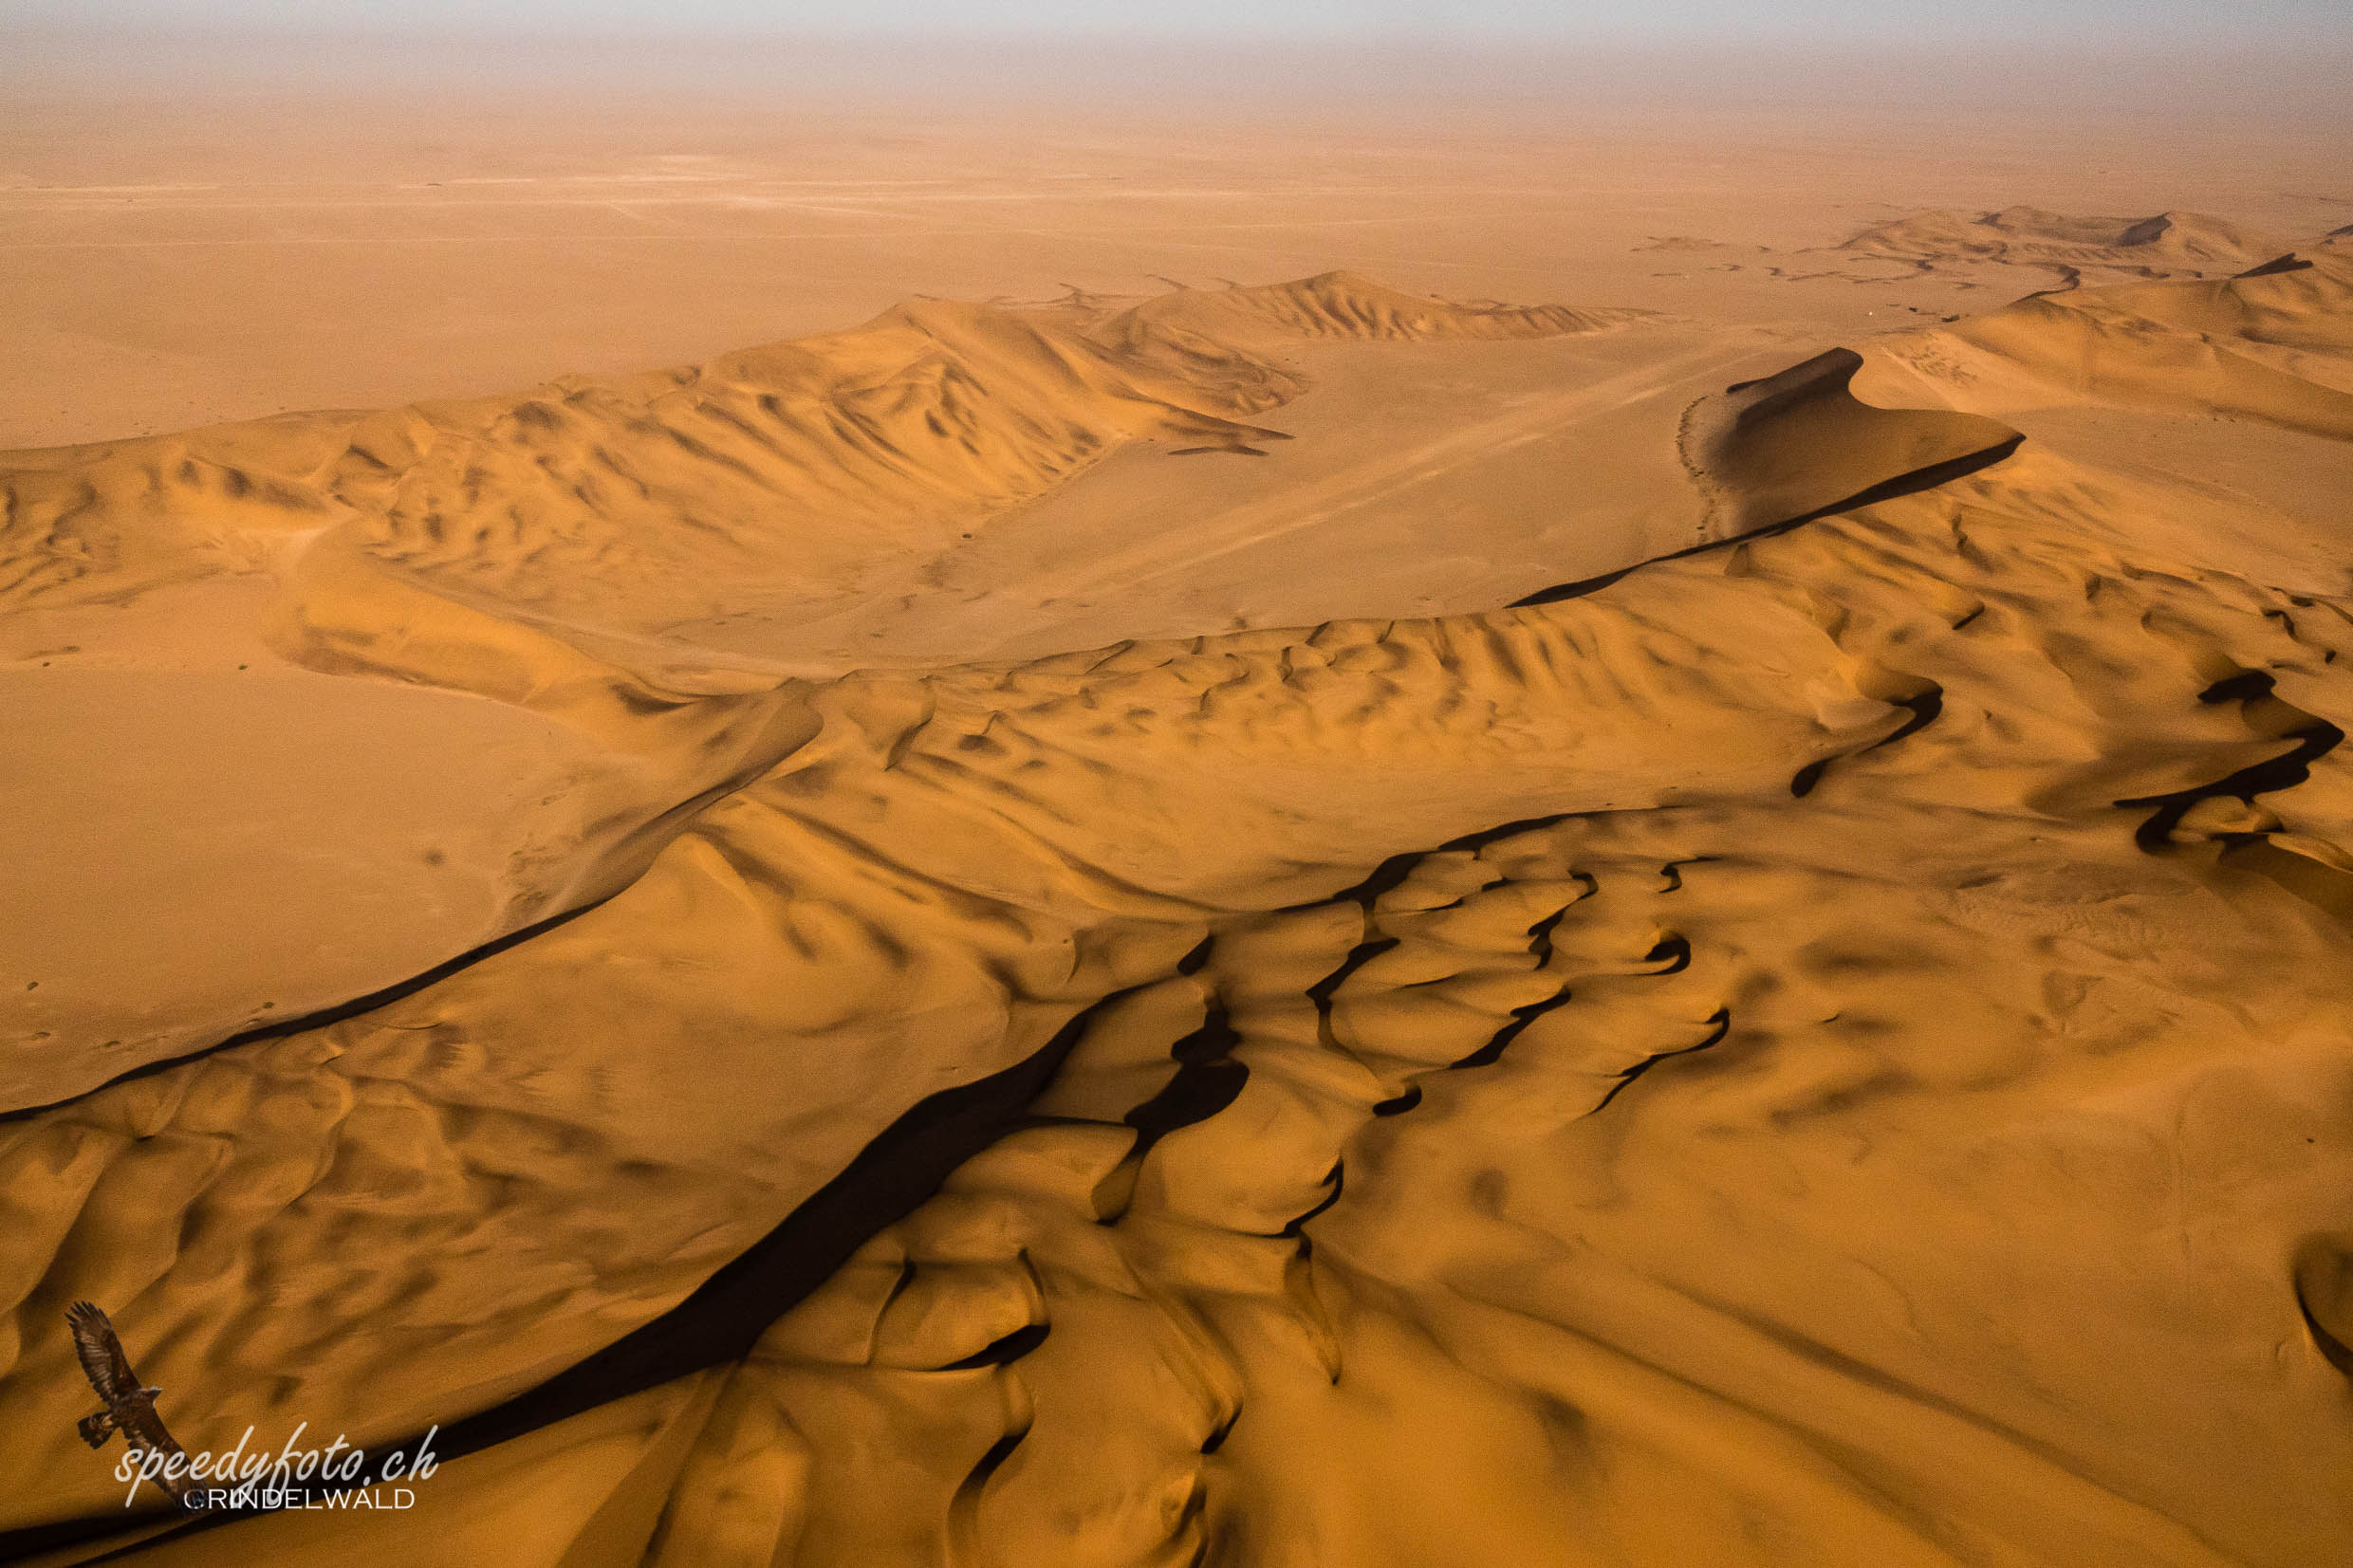 The Dunes - Aerial view